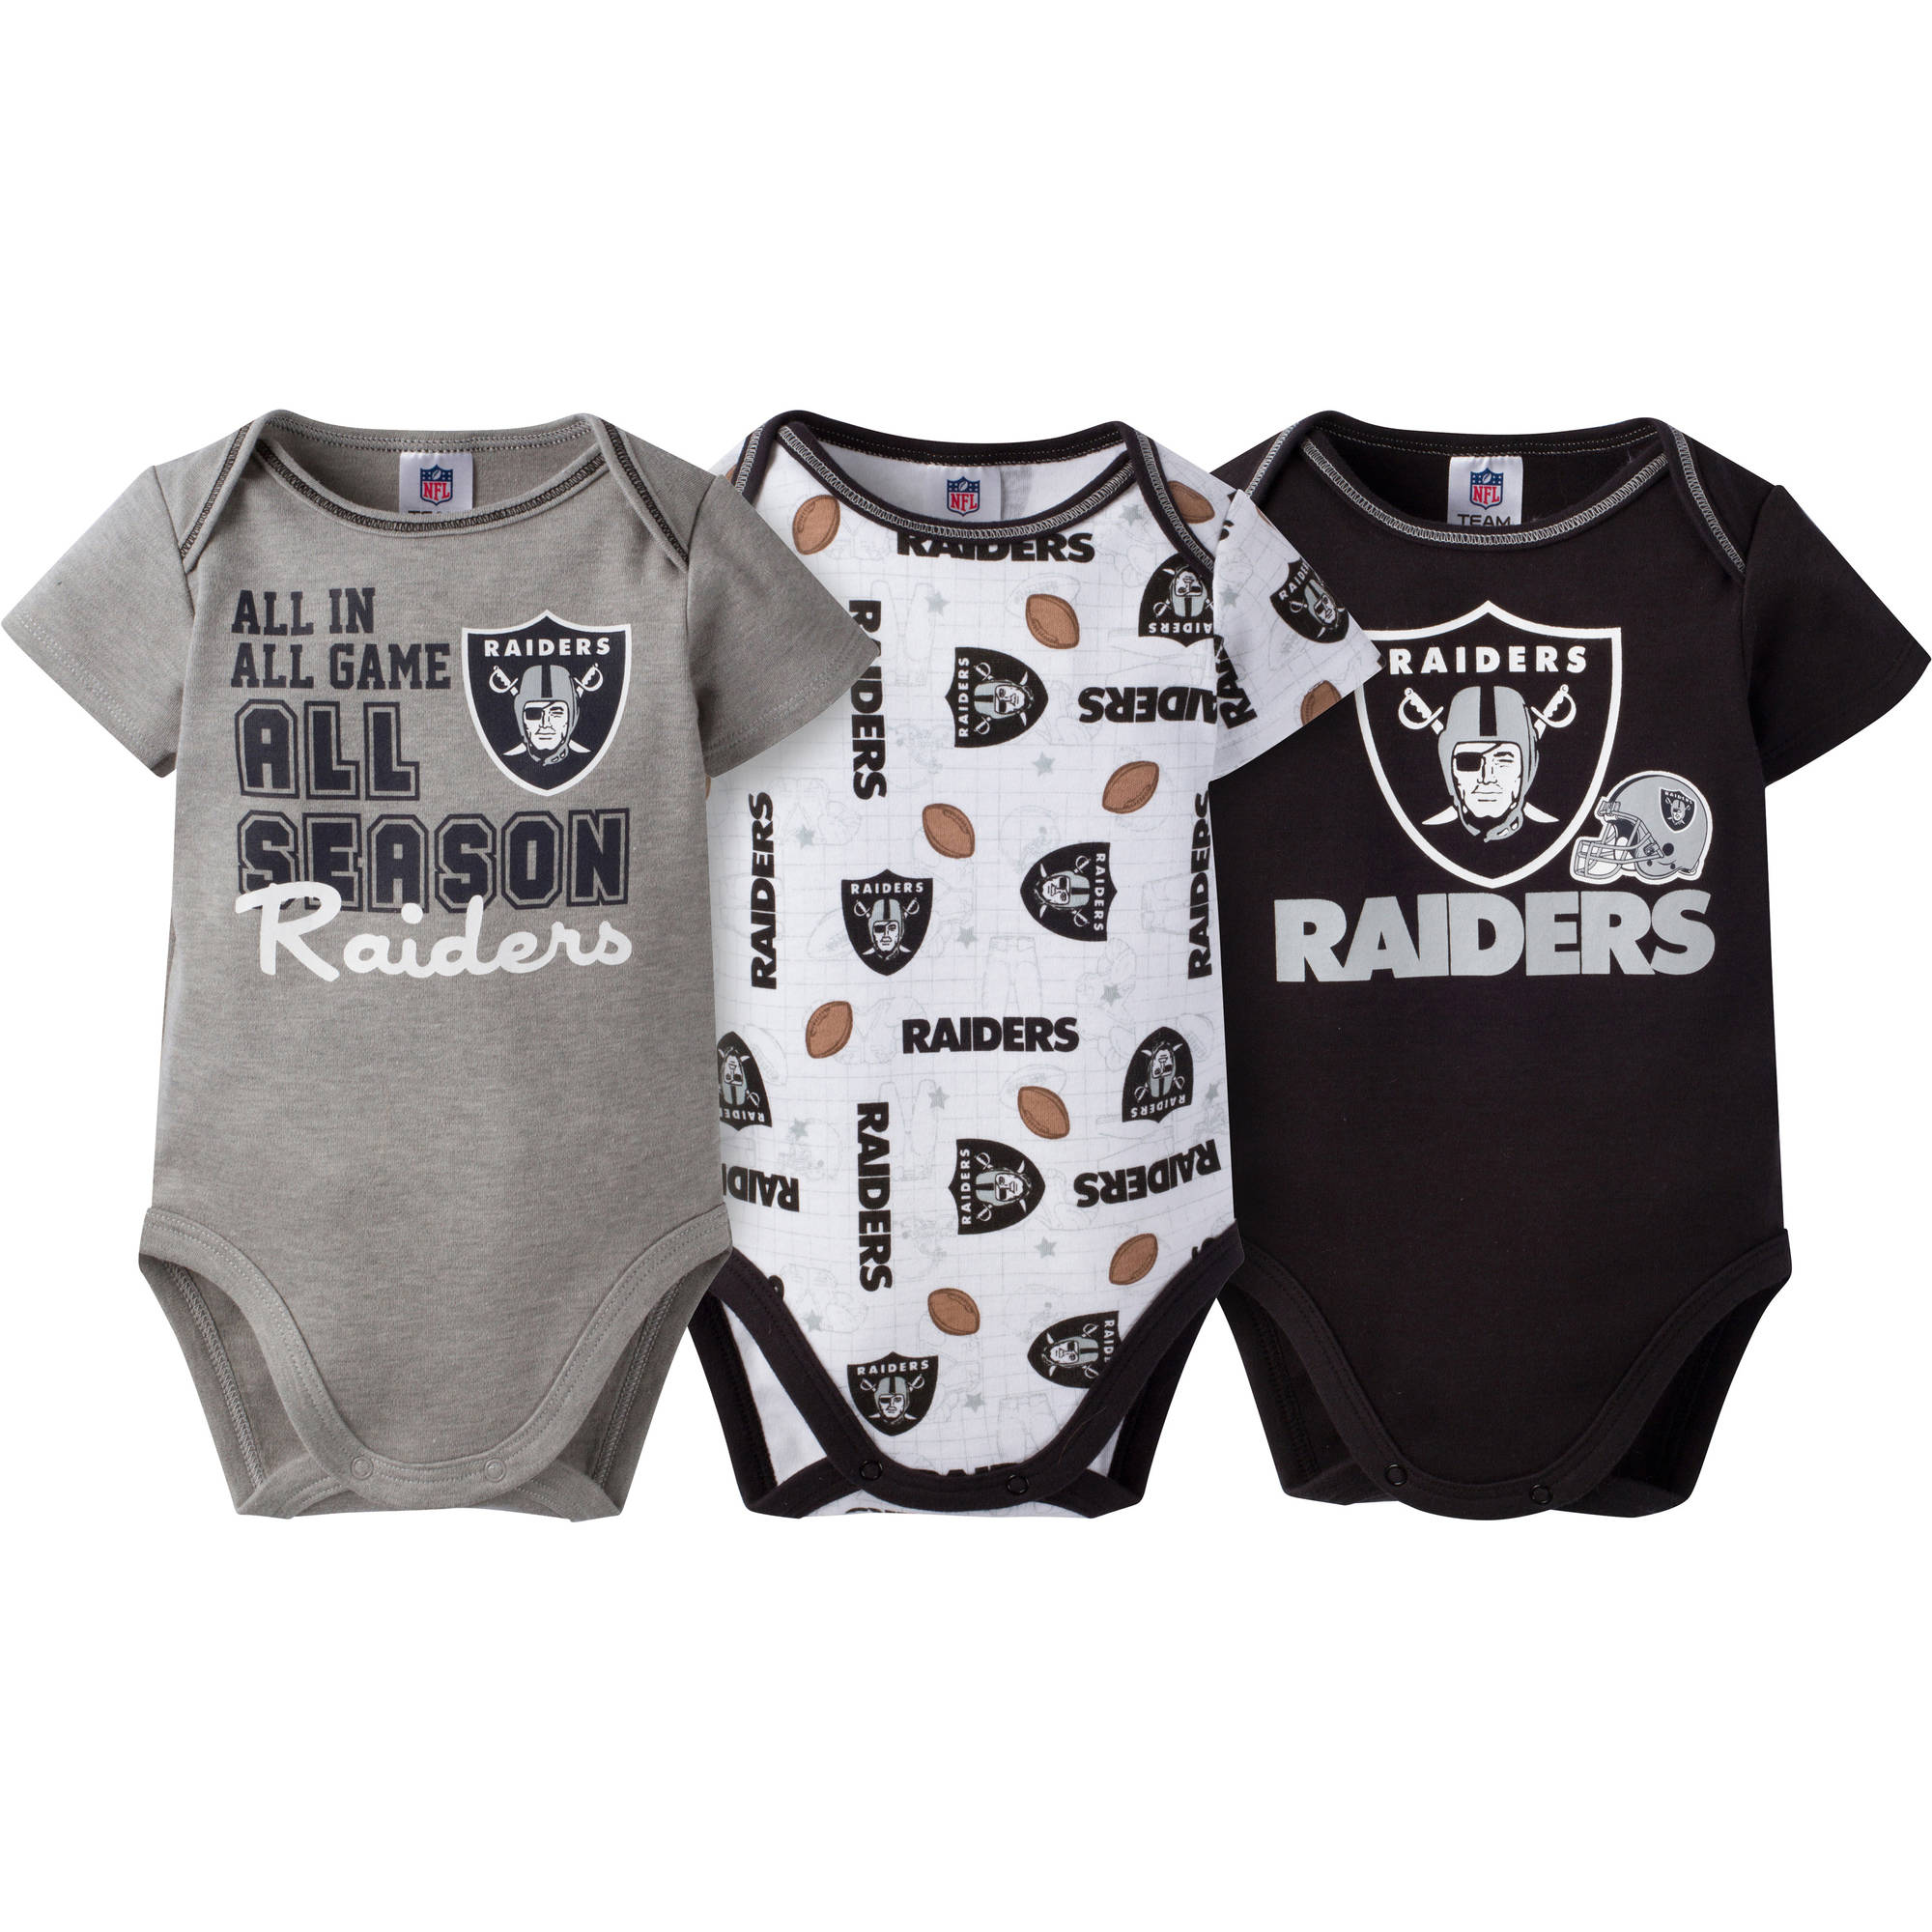 NFL Oakland Raiders Baby Boys Short Sleeve Bodysuit Set, 3-Pack